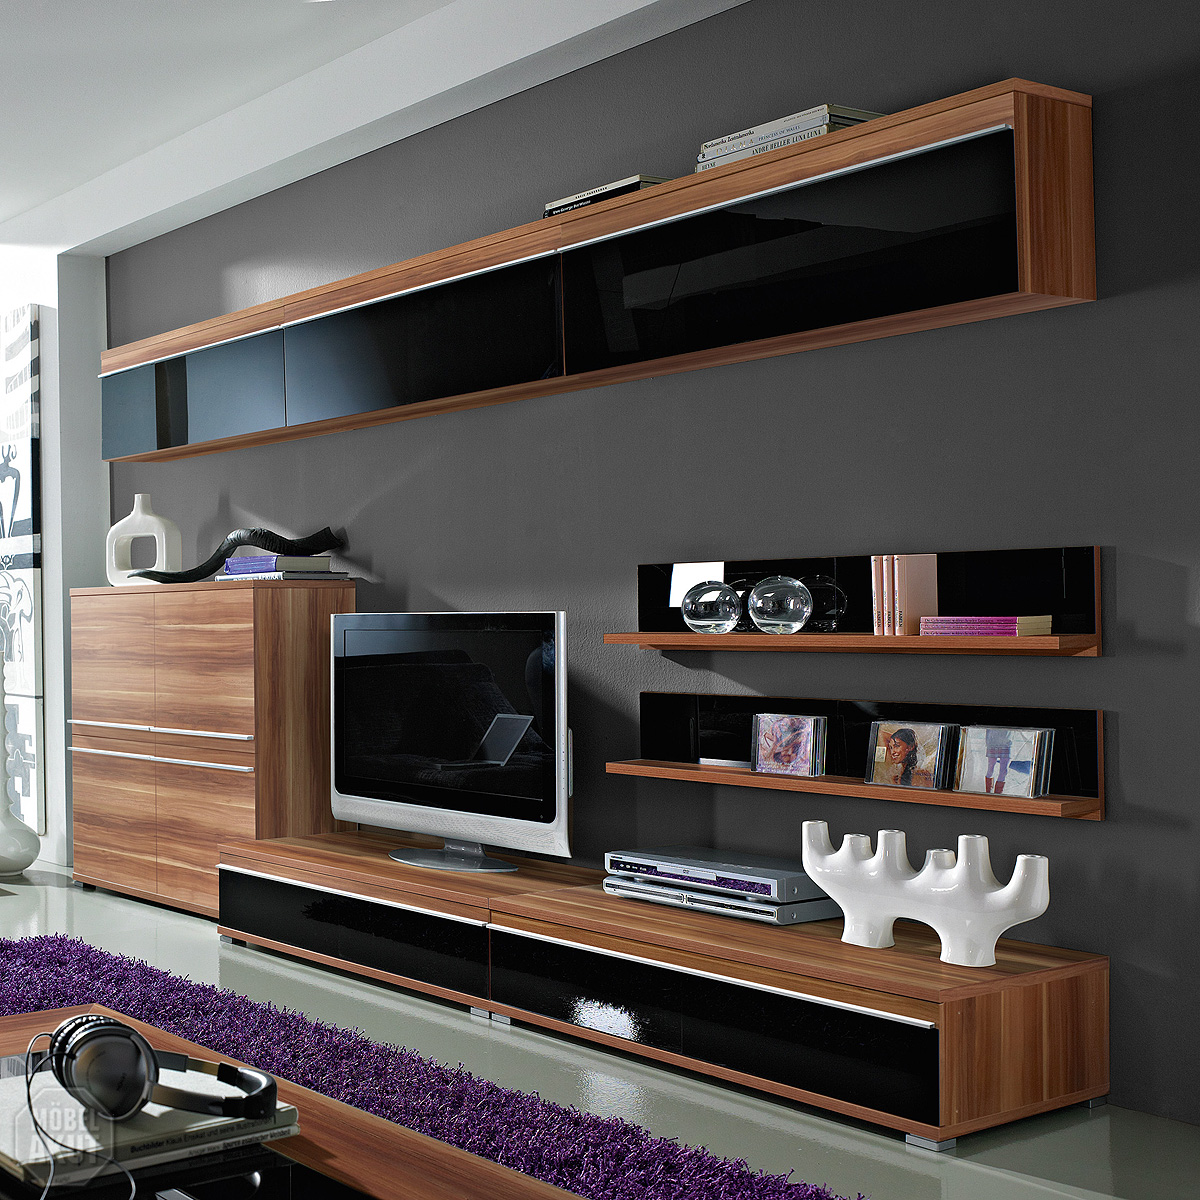 wohnwand pace 2 anbauwand walnuss schwarz glas neu ebay. Black Bedroom Furniture Sets. Home Design Ideas